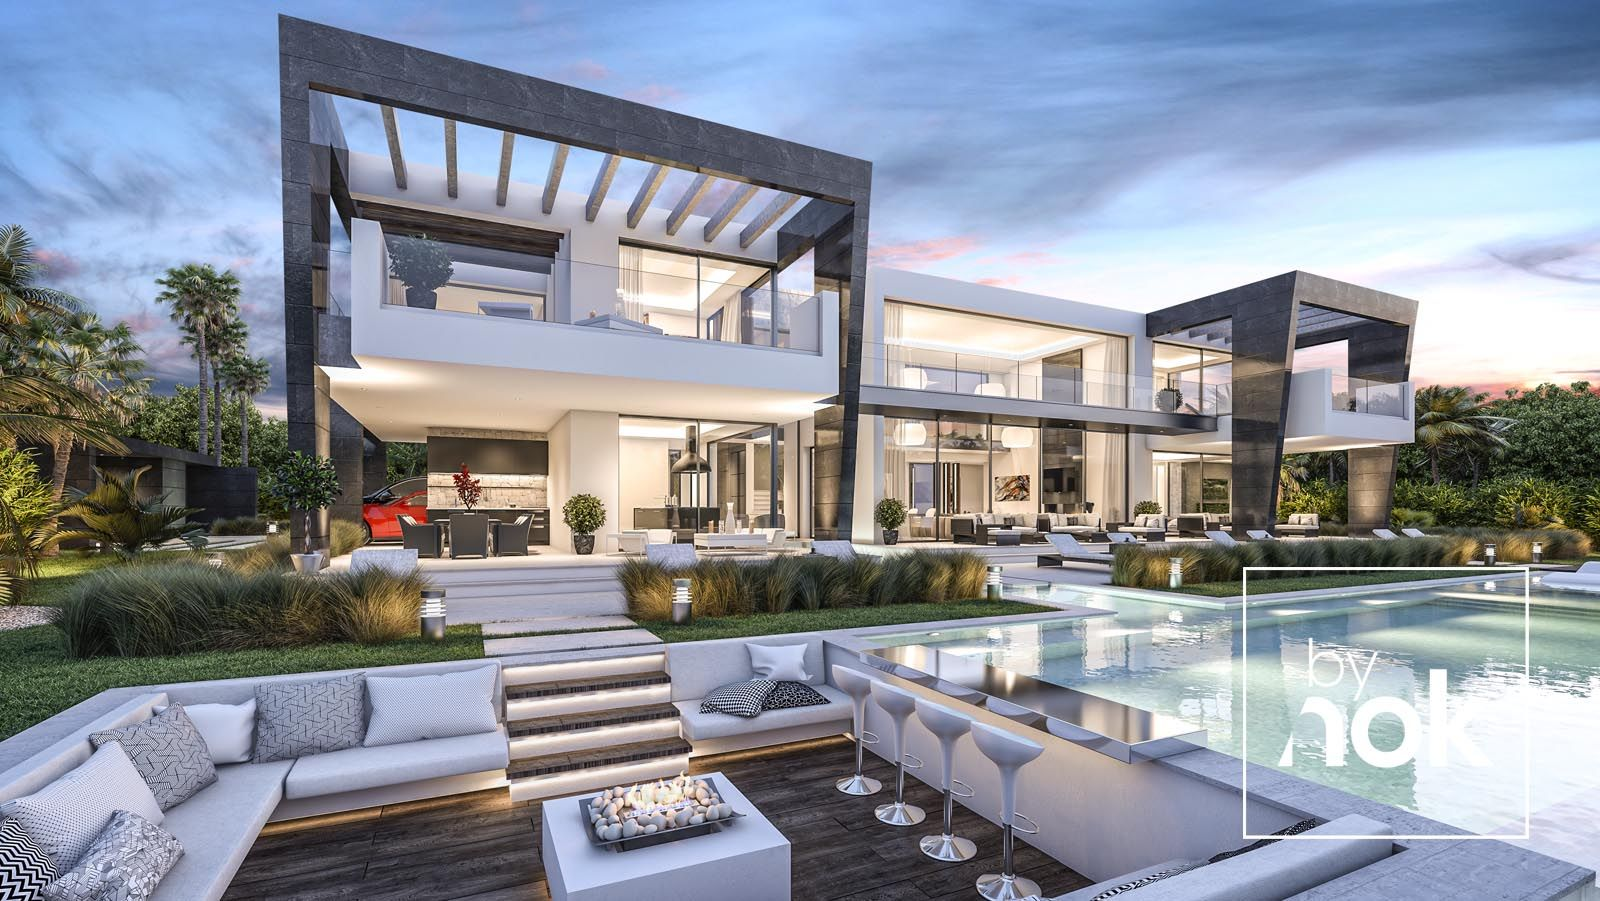 Architecture Construction Modern Villa In Aloha Marbella